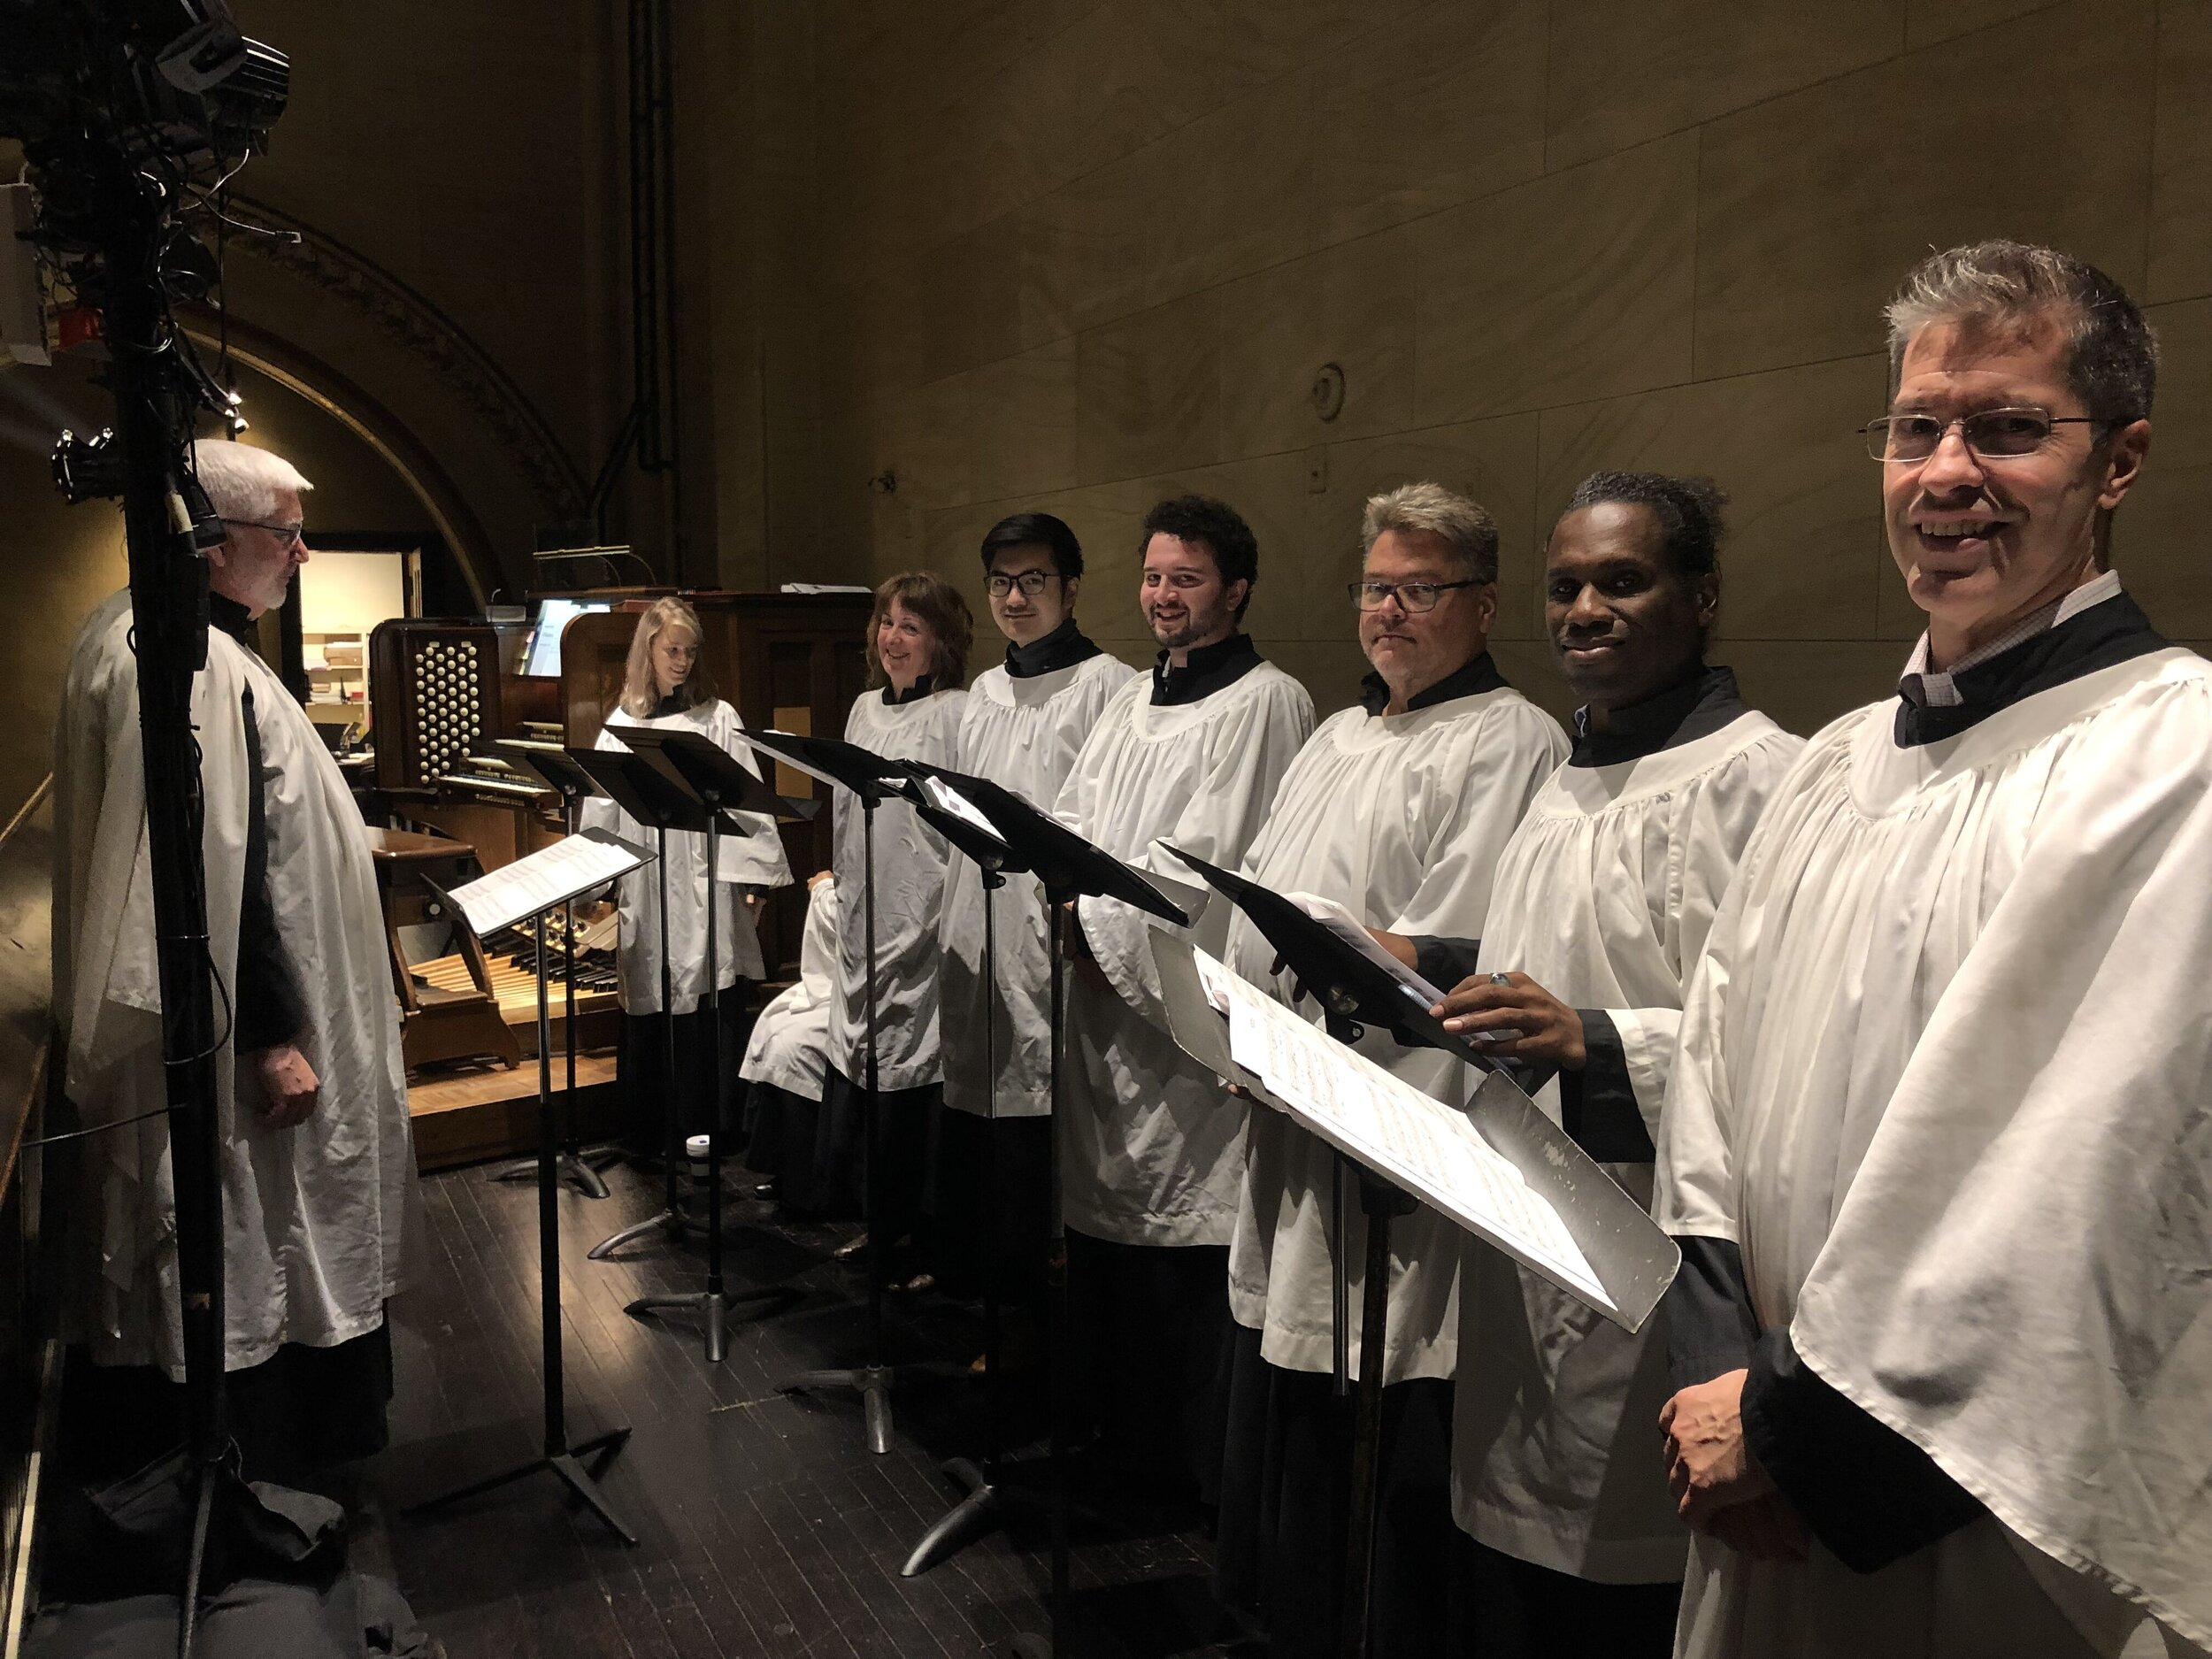 """""""Sing the praise of the Lord in the congregation of the faithful"""": The Saint Mary's Choir returns to Saint Mary's after the summer break. Clark Anderson played the service and directed the choir on October 6.    Photo:  Brendon Hunter"""